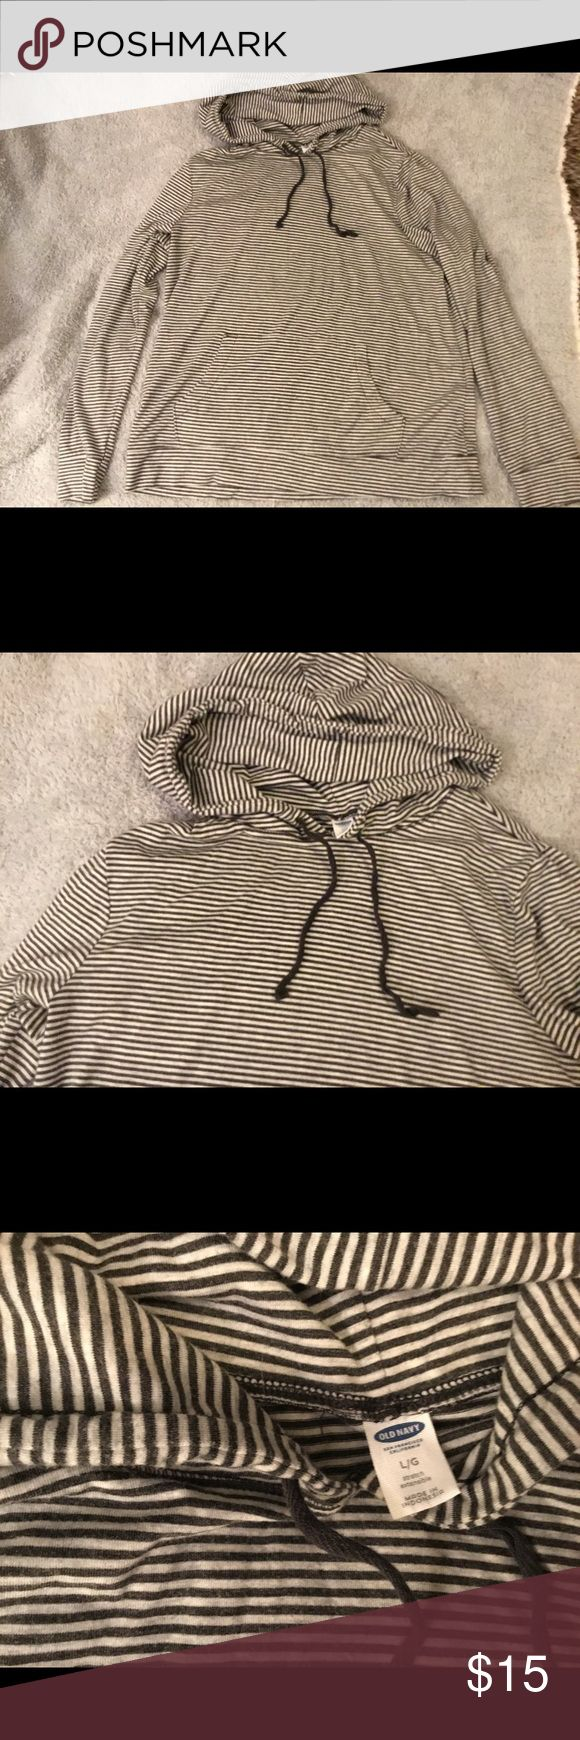 Old Navy Striped Pull Over Top Large Super cute and comfy Old Navy striped long sleeve hooded top in size large. Old Navy Tops Sweatshirts & Hoodies